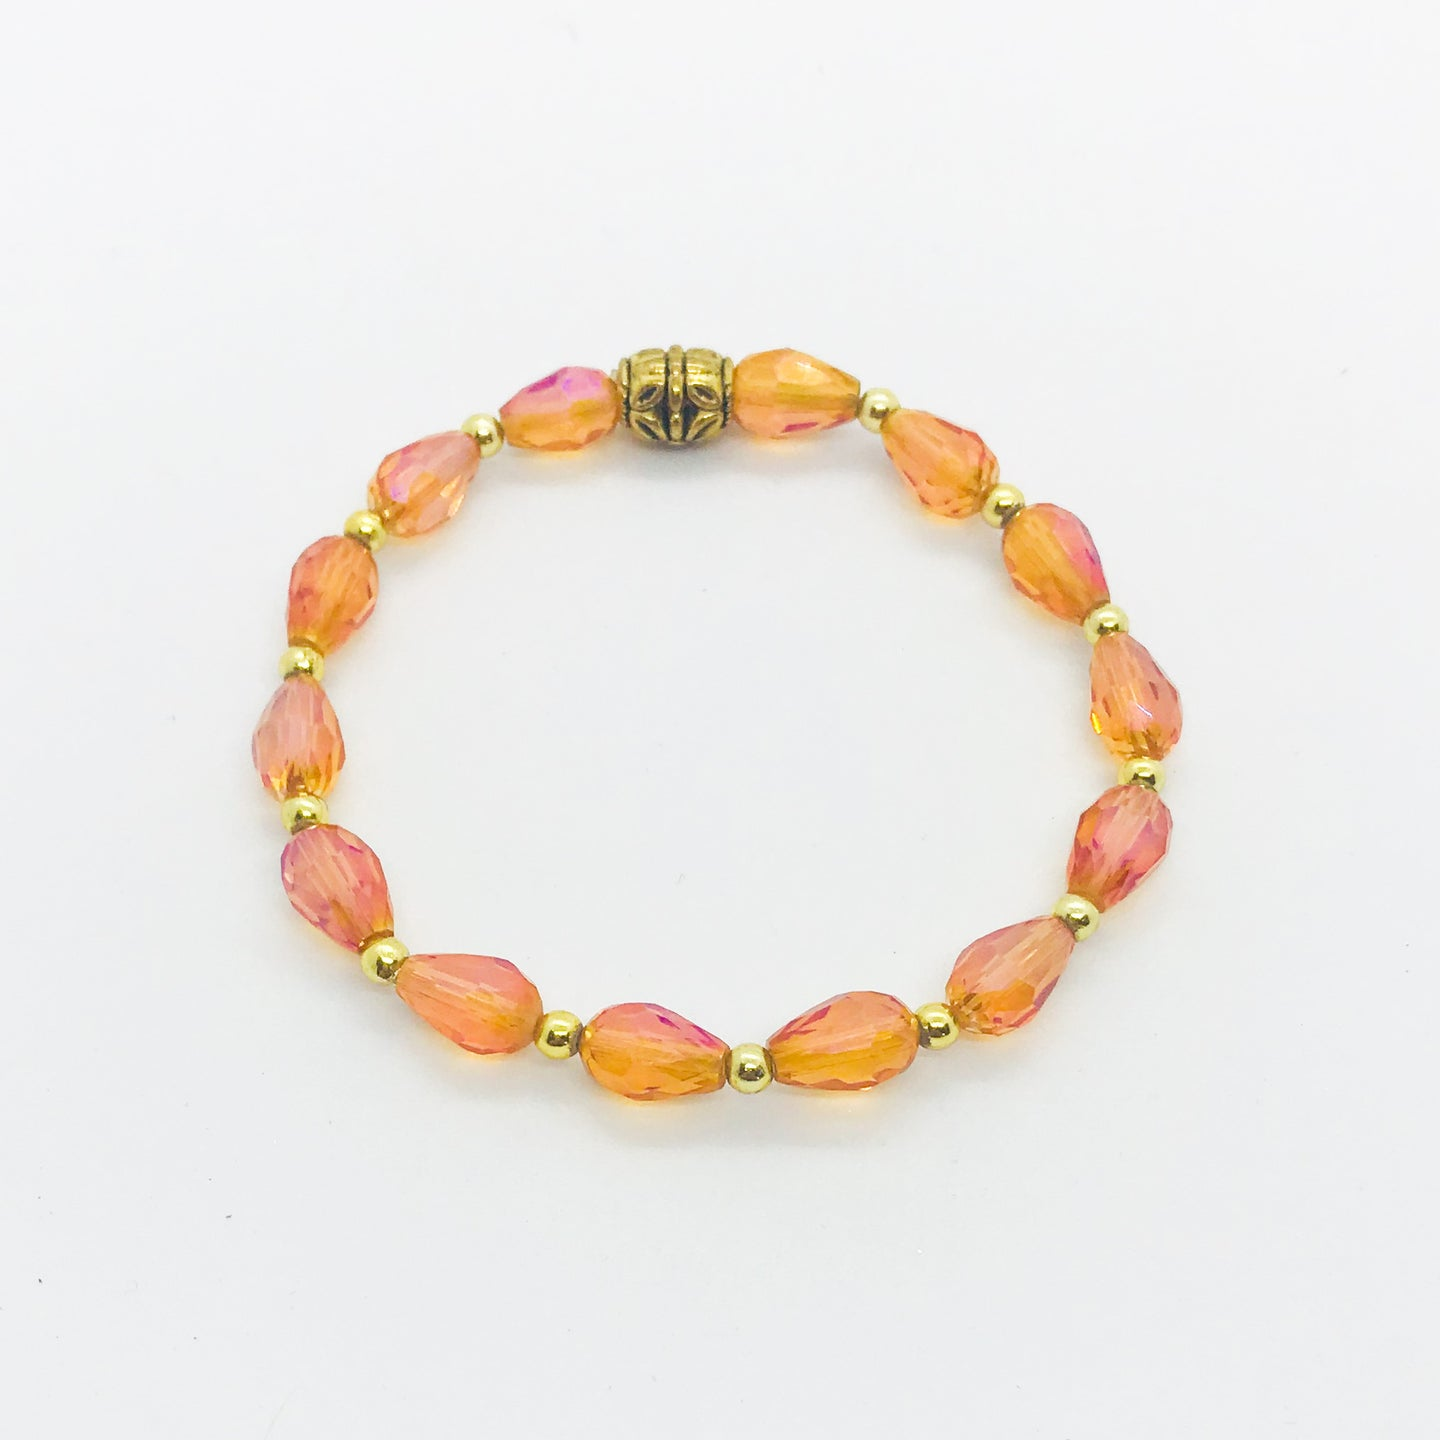 Glass Bead Stretchy Bracelet - B553